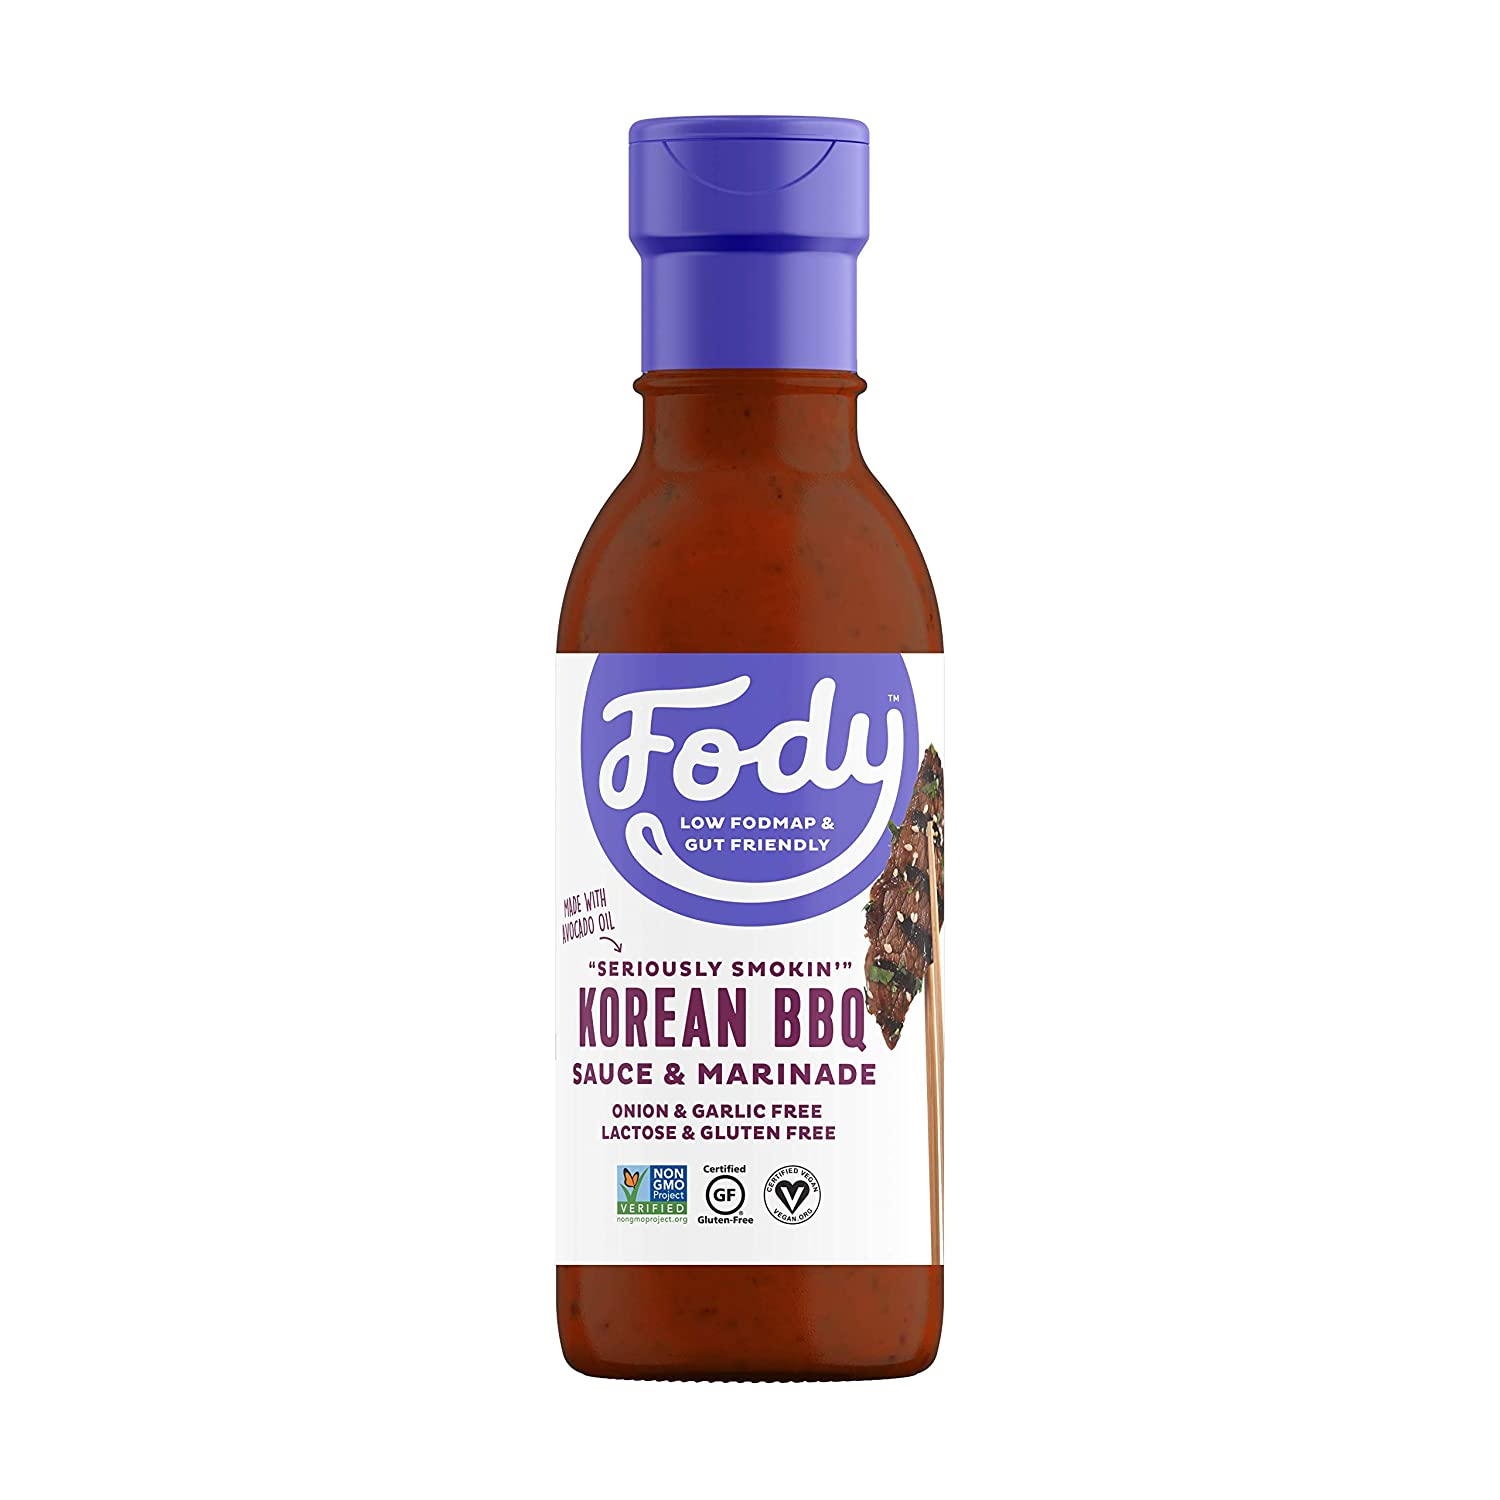 Fody Foods Vegan Korean BBQ Sauce Marinade Pack | Red Miso | Avocado Oil | Low FODMAP Certified | Gut Friendly No Onion No Garlic No MSG | IBS Friendly | Gluten Free Lactose Free | 4 Bottles, 8 Ounce